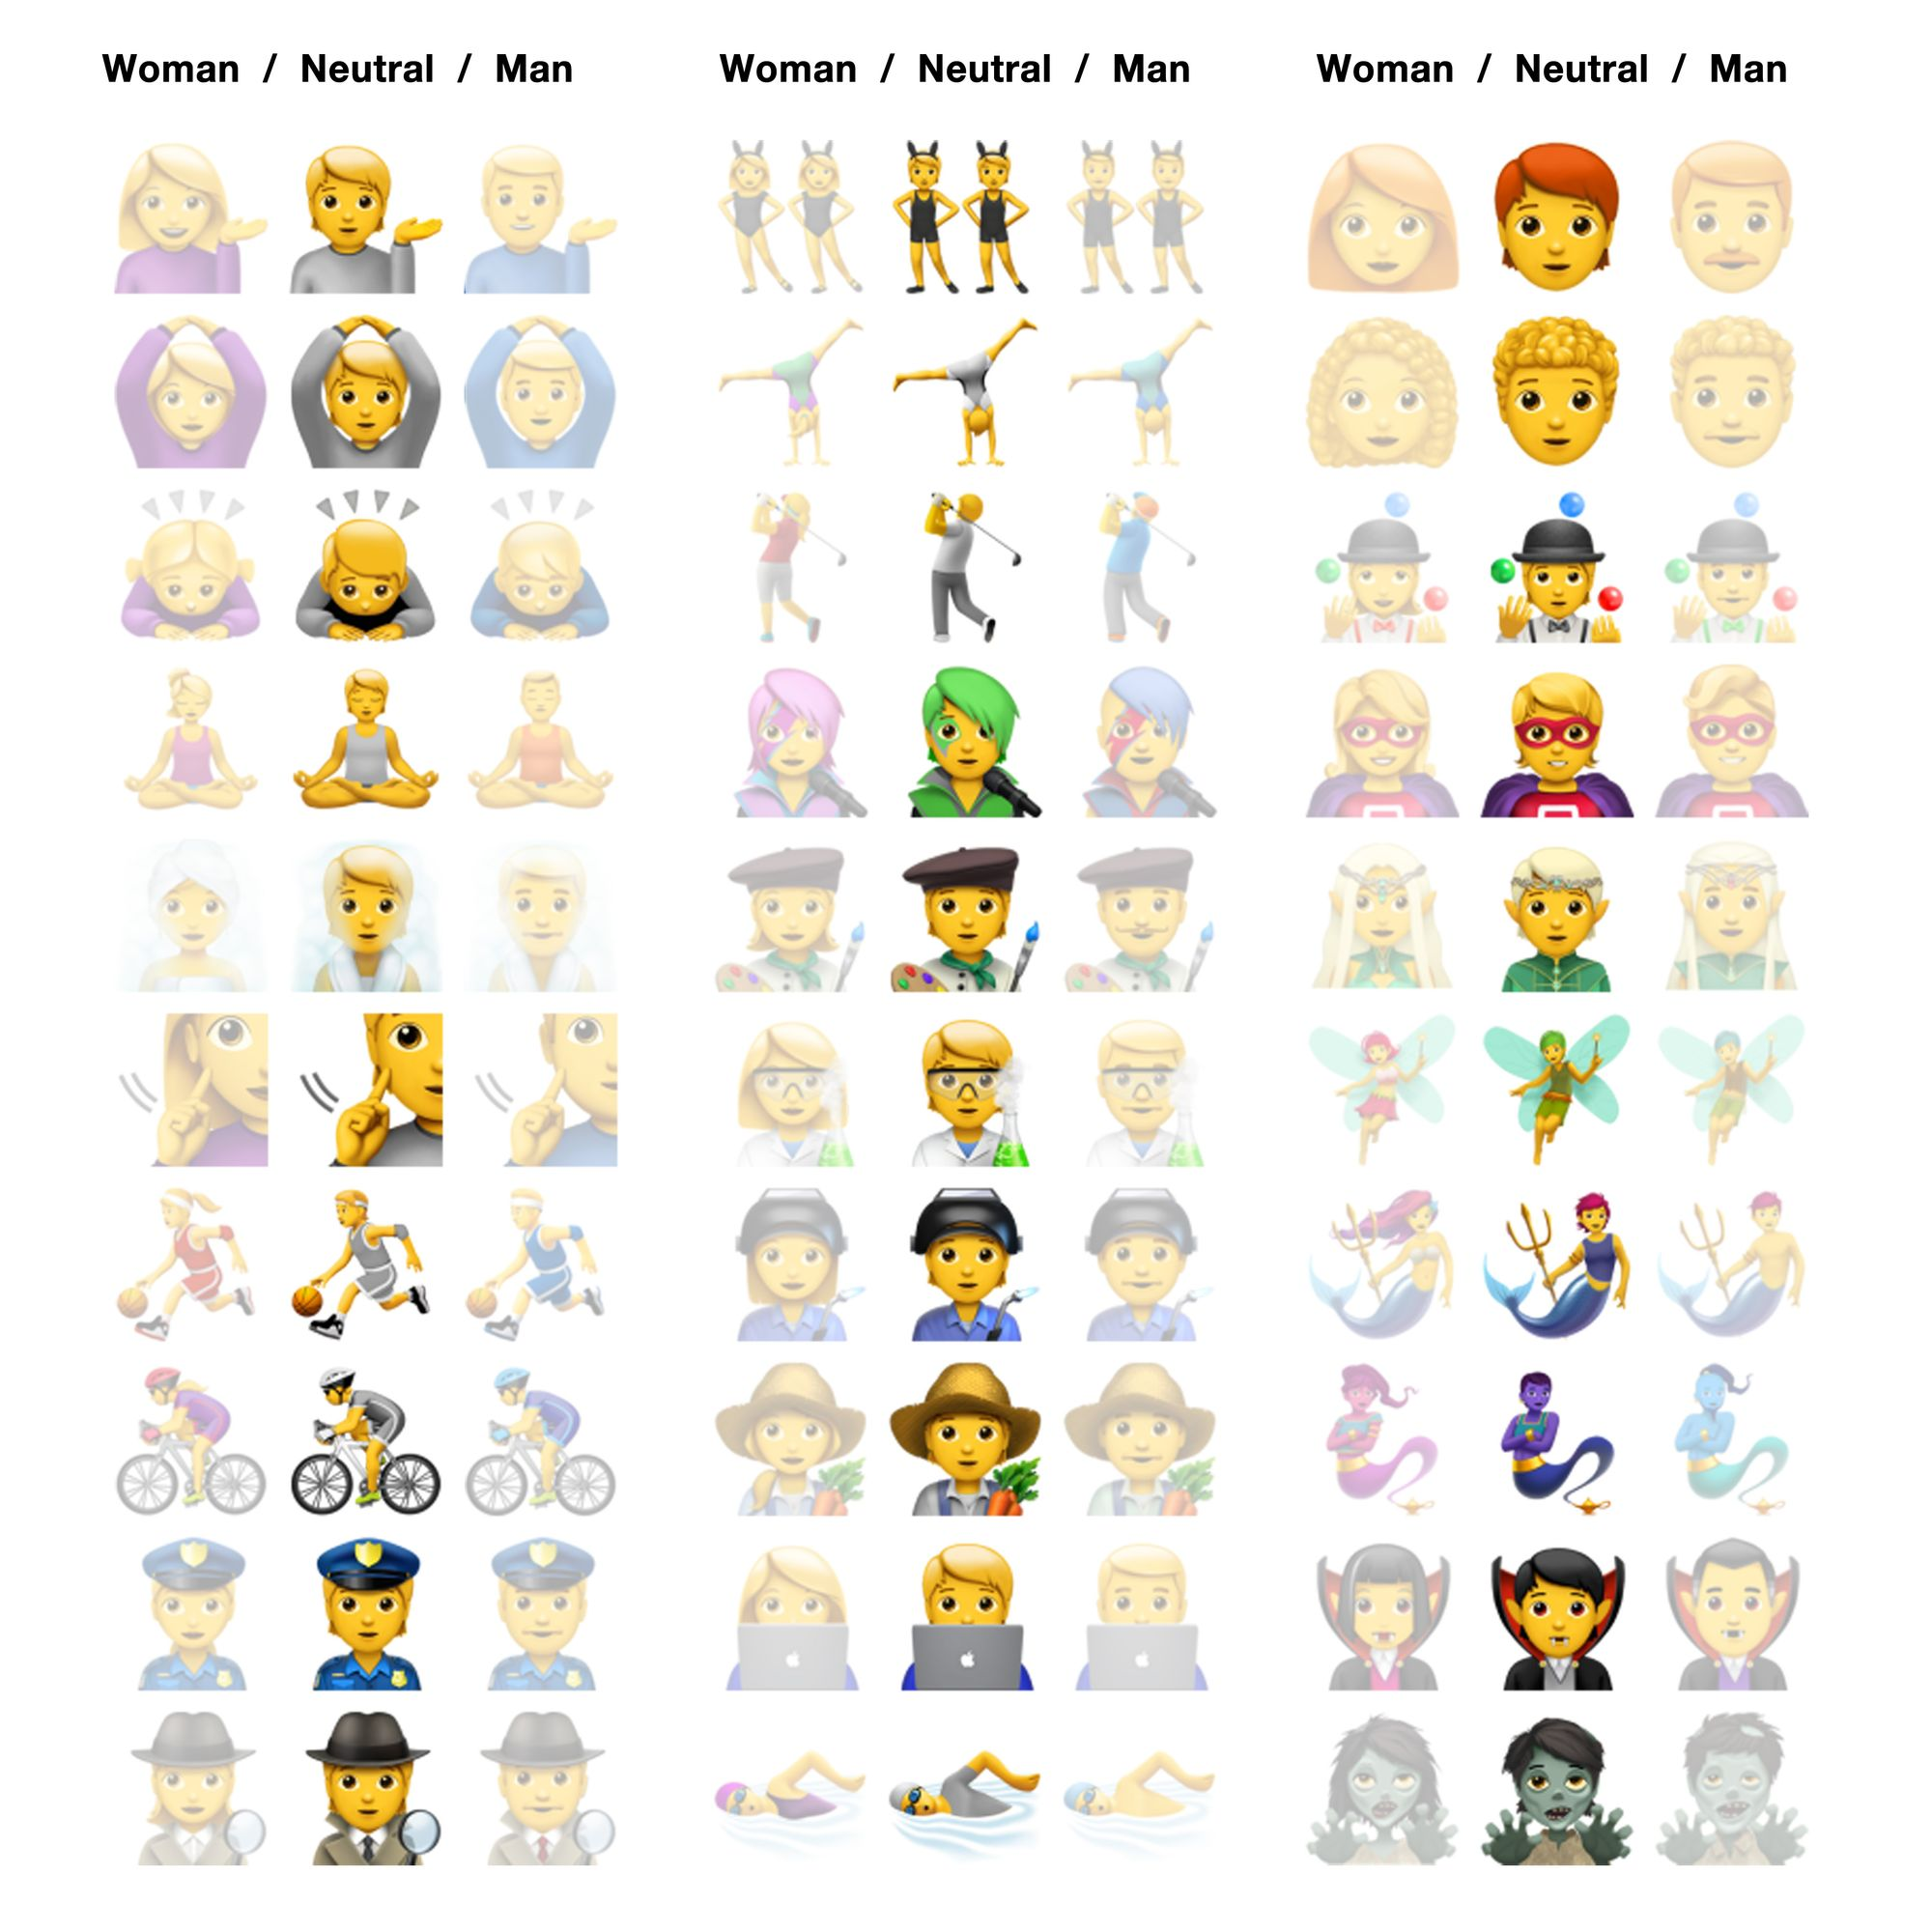 Emojipedia-Apple-iOS-13.2-Gender-Neutral-Comparison